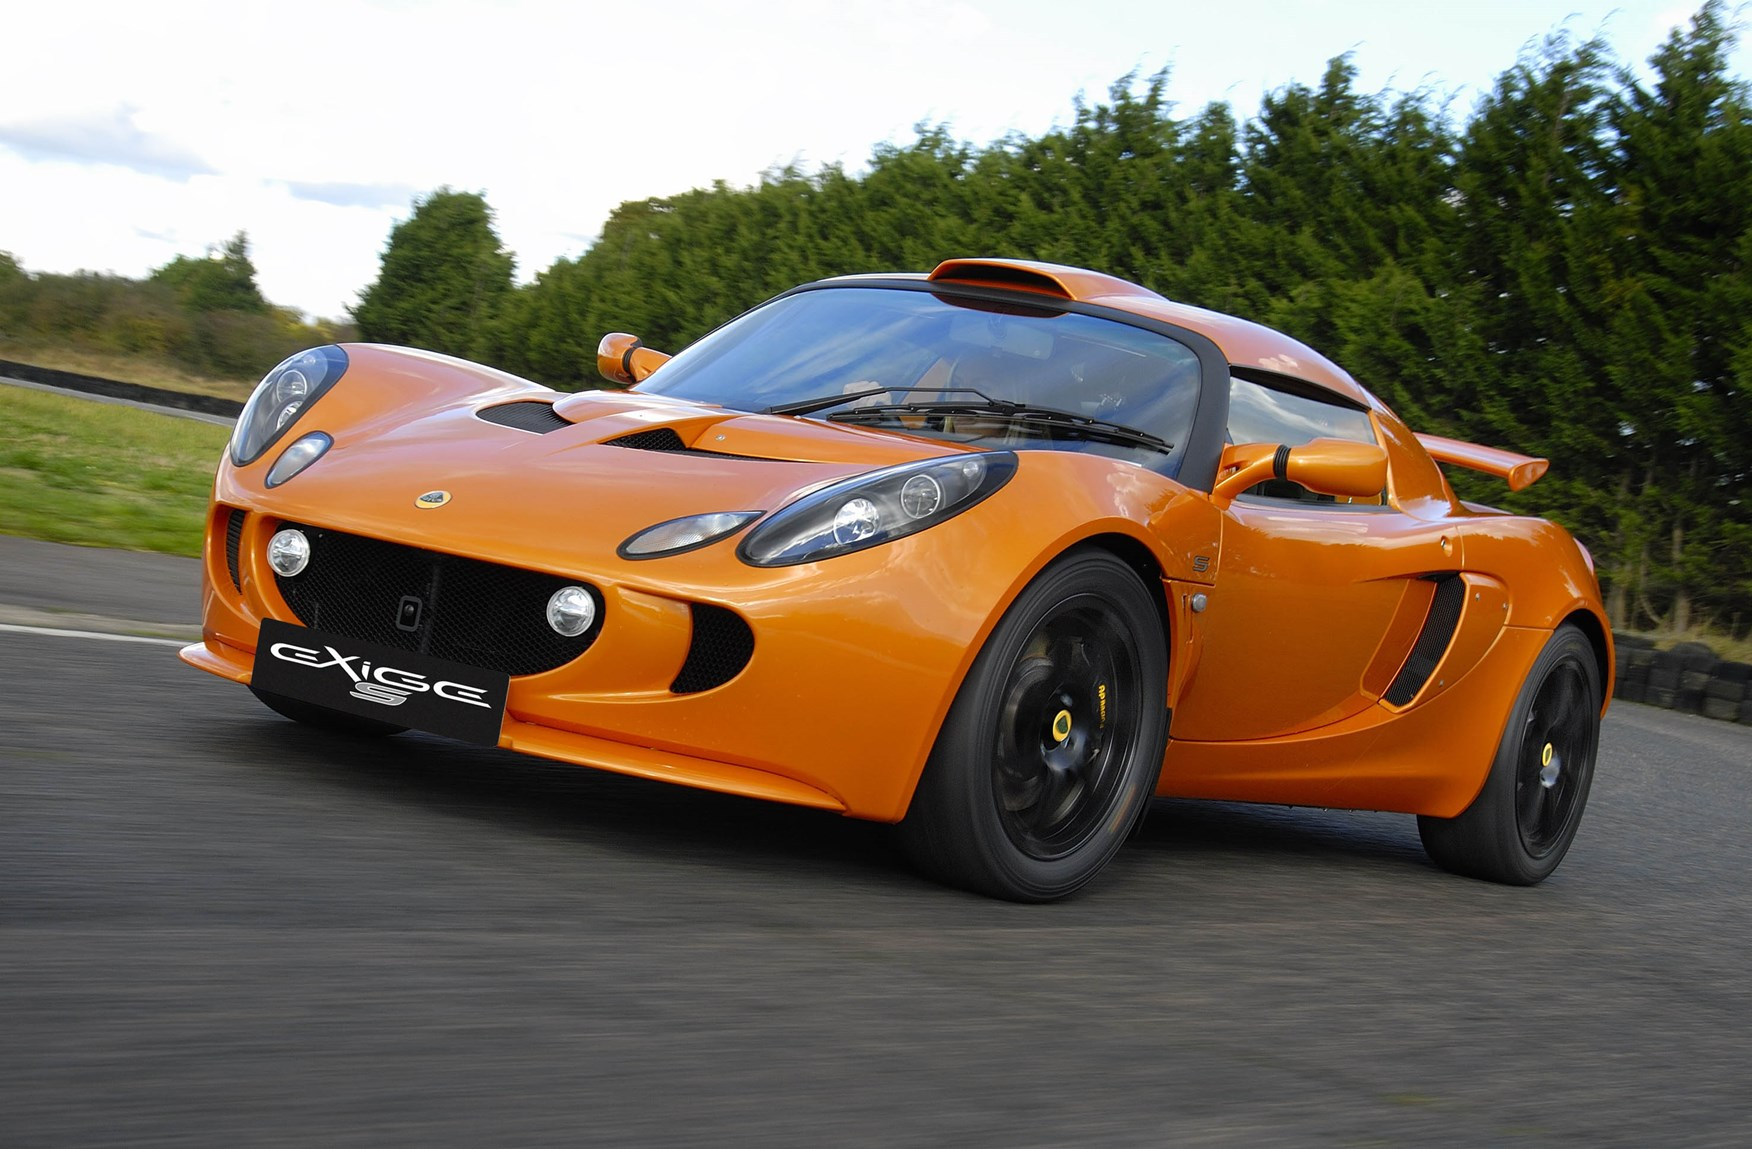 Lotus exige coupe review 2004 parkers view all images of the lotus exige vanachro Images